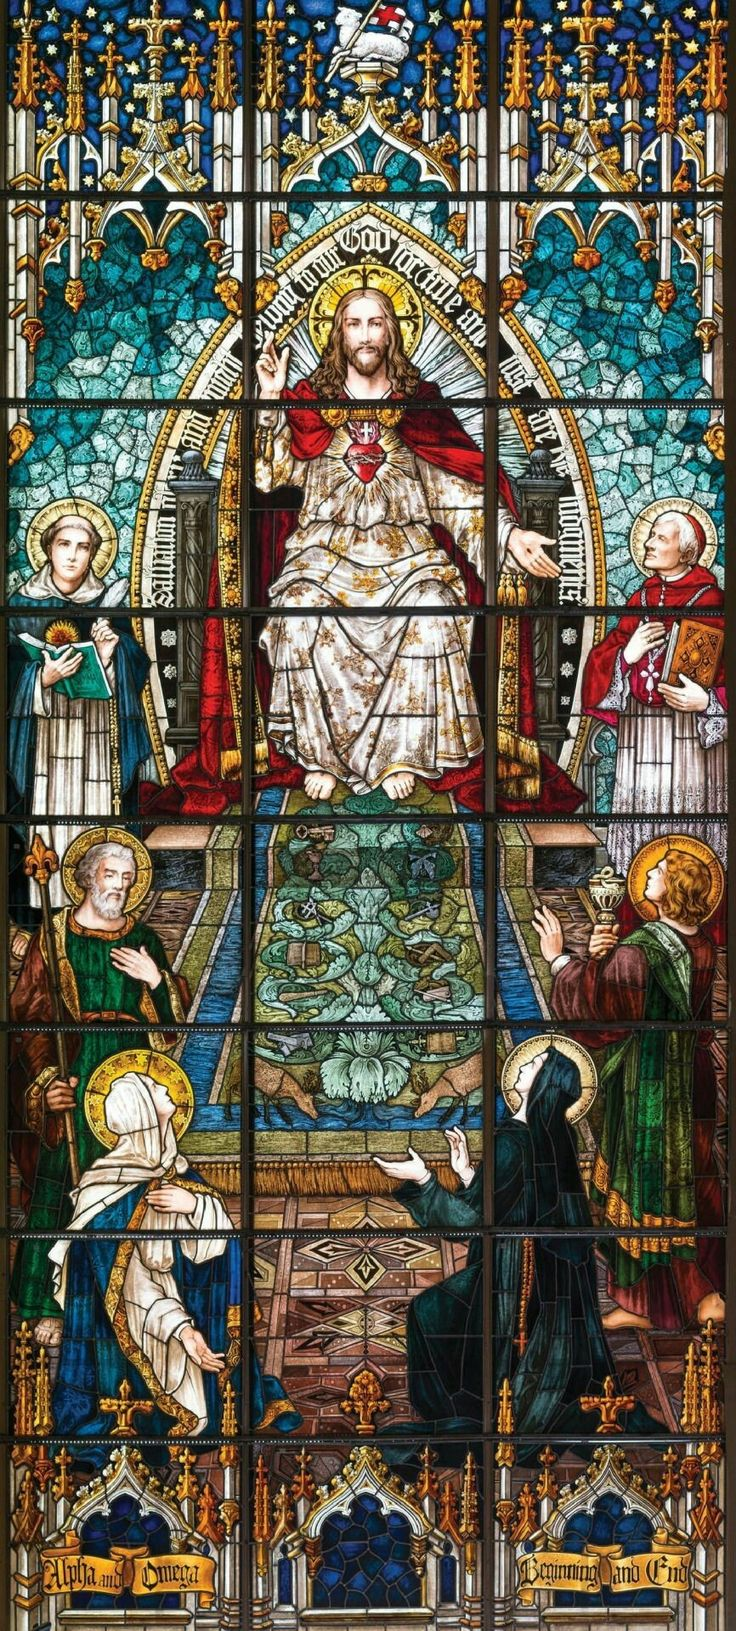 Stained glass [detail] from St. Thomas Aquinas Church